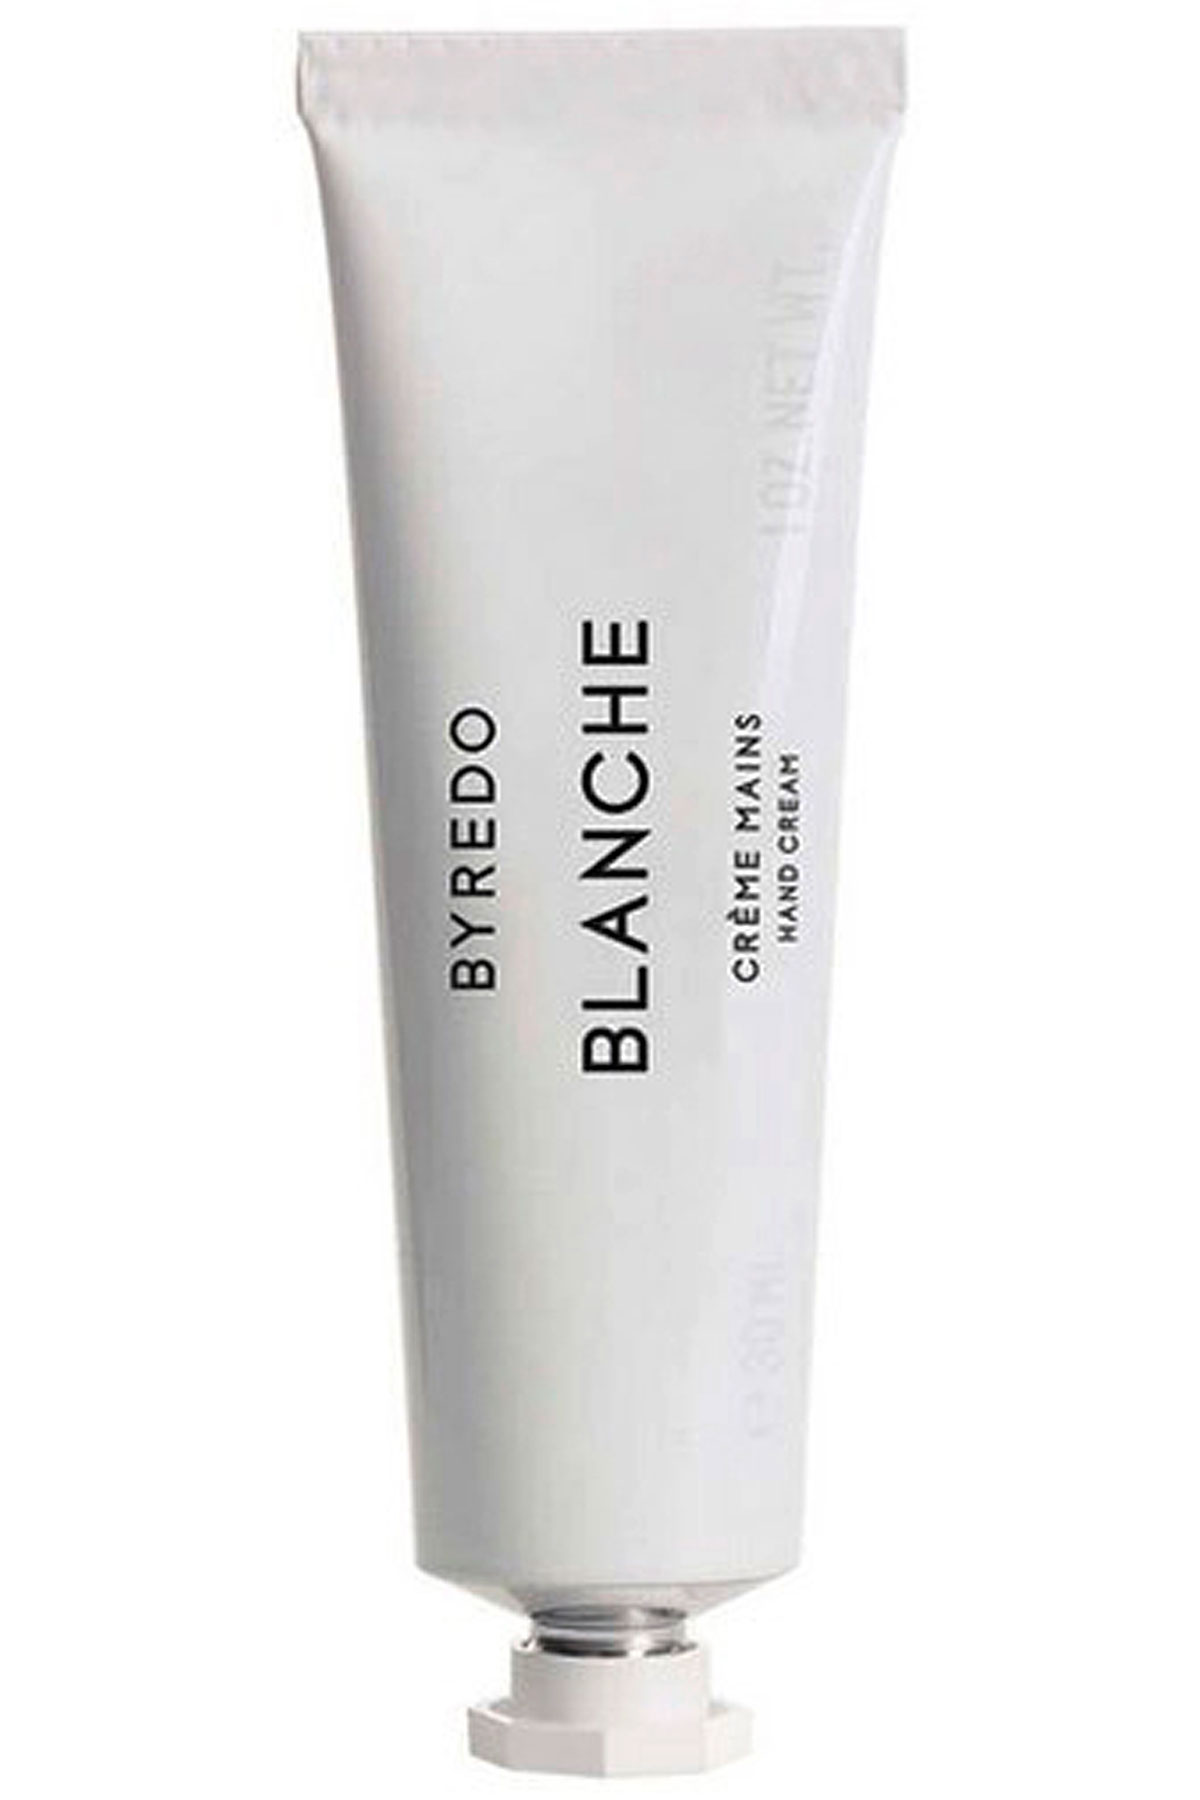 Byredo Beauty for Women, Blanche - Hand Cream - 30 Ml, 2019, 30 ml